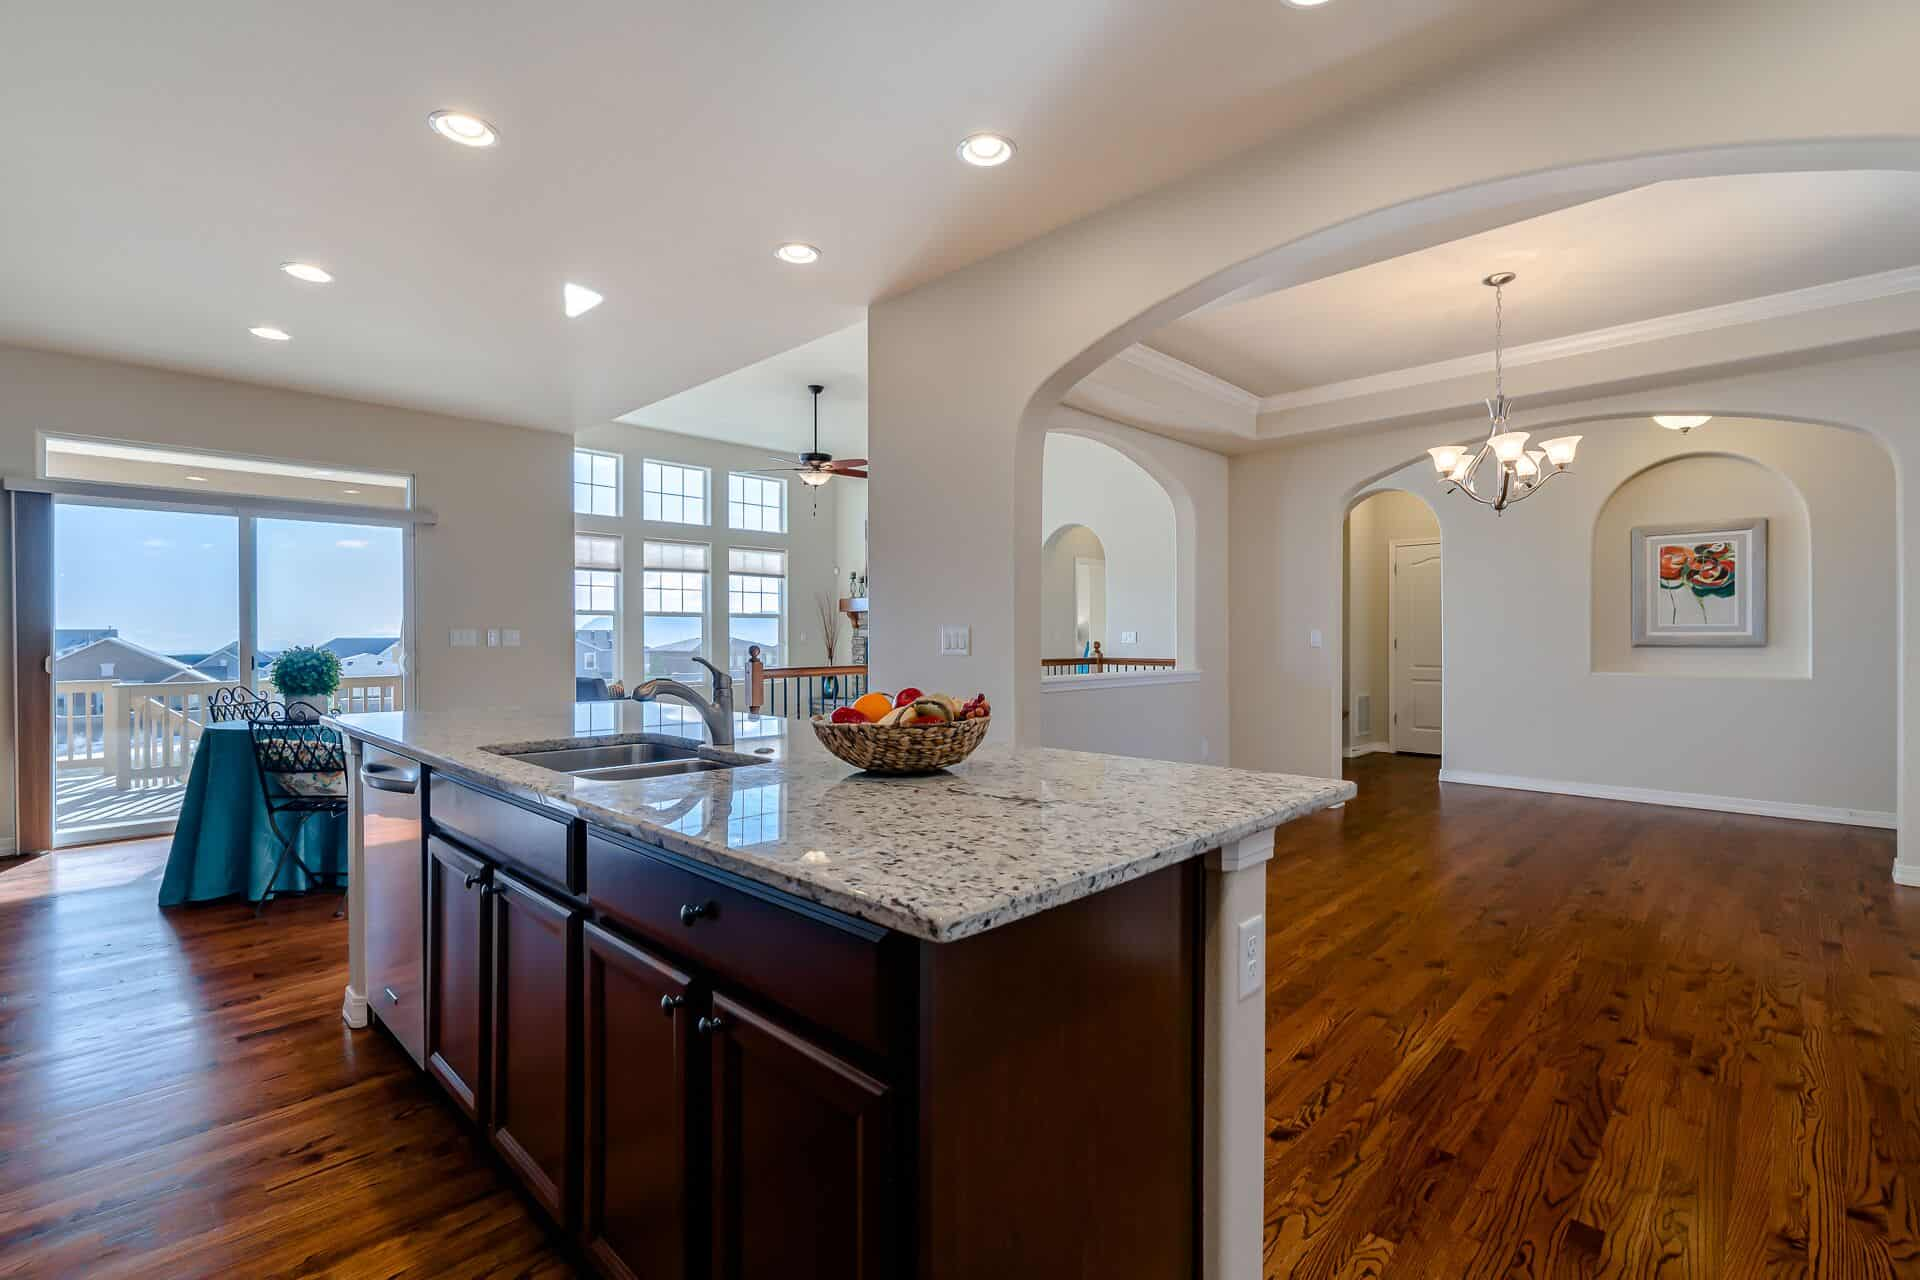 View of Nook and Formal Dining Room from Kitchen